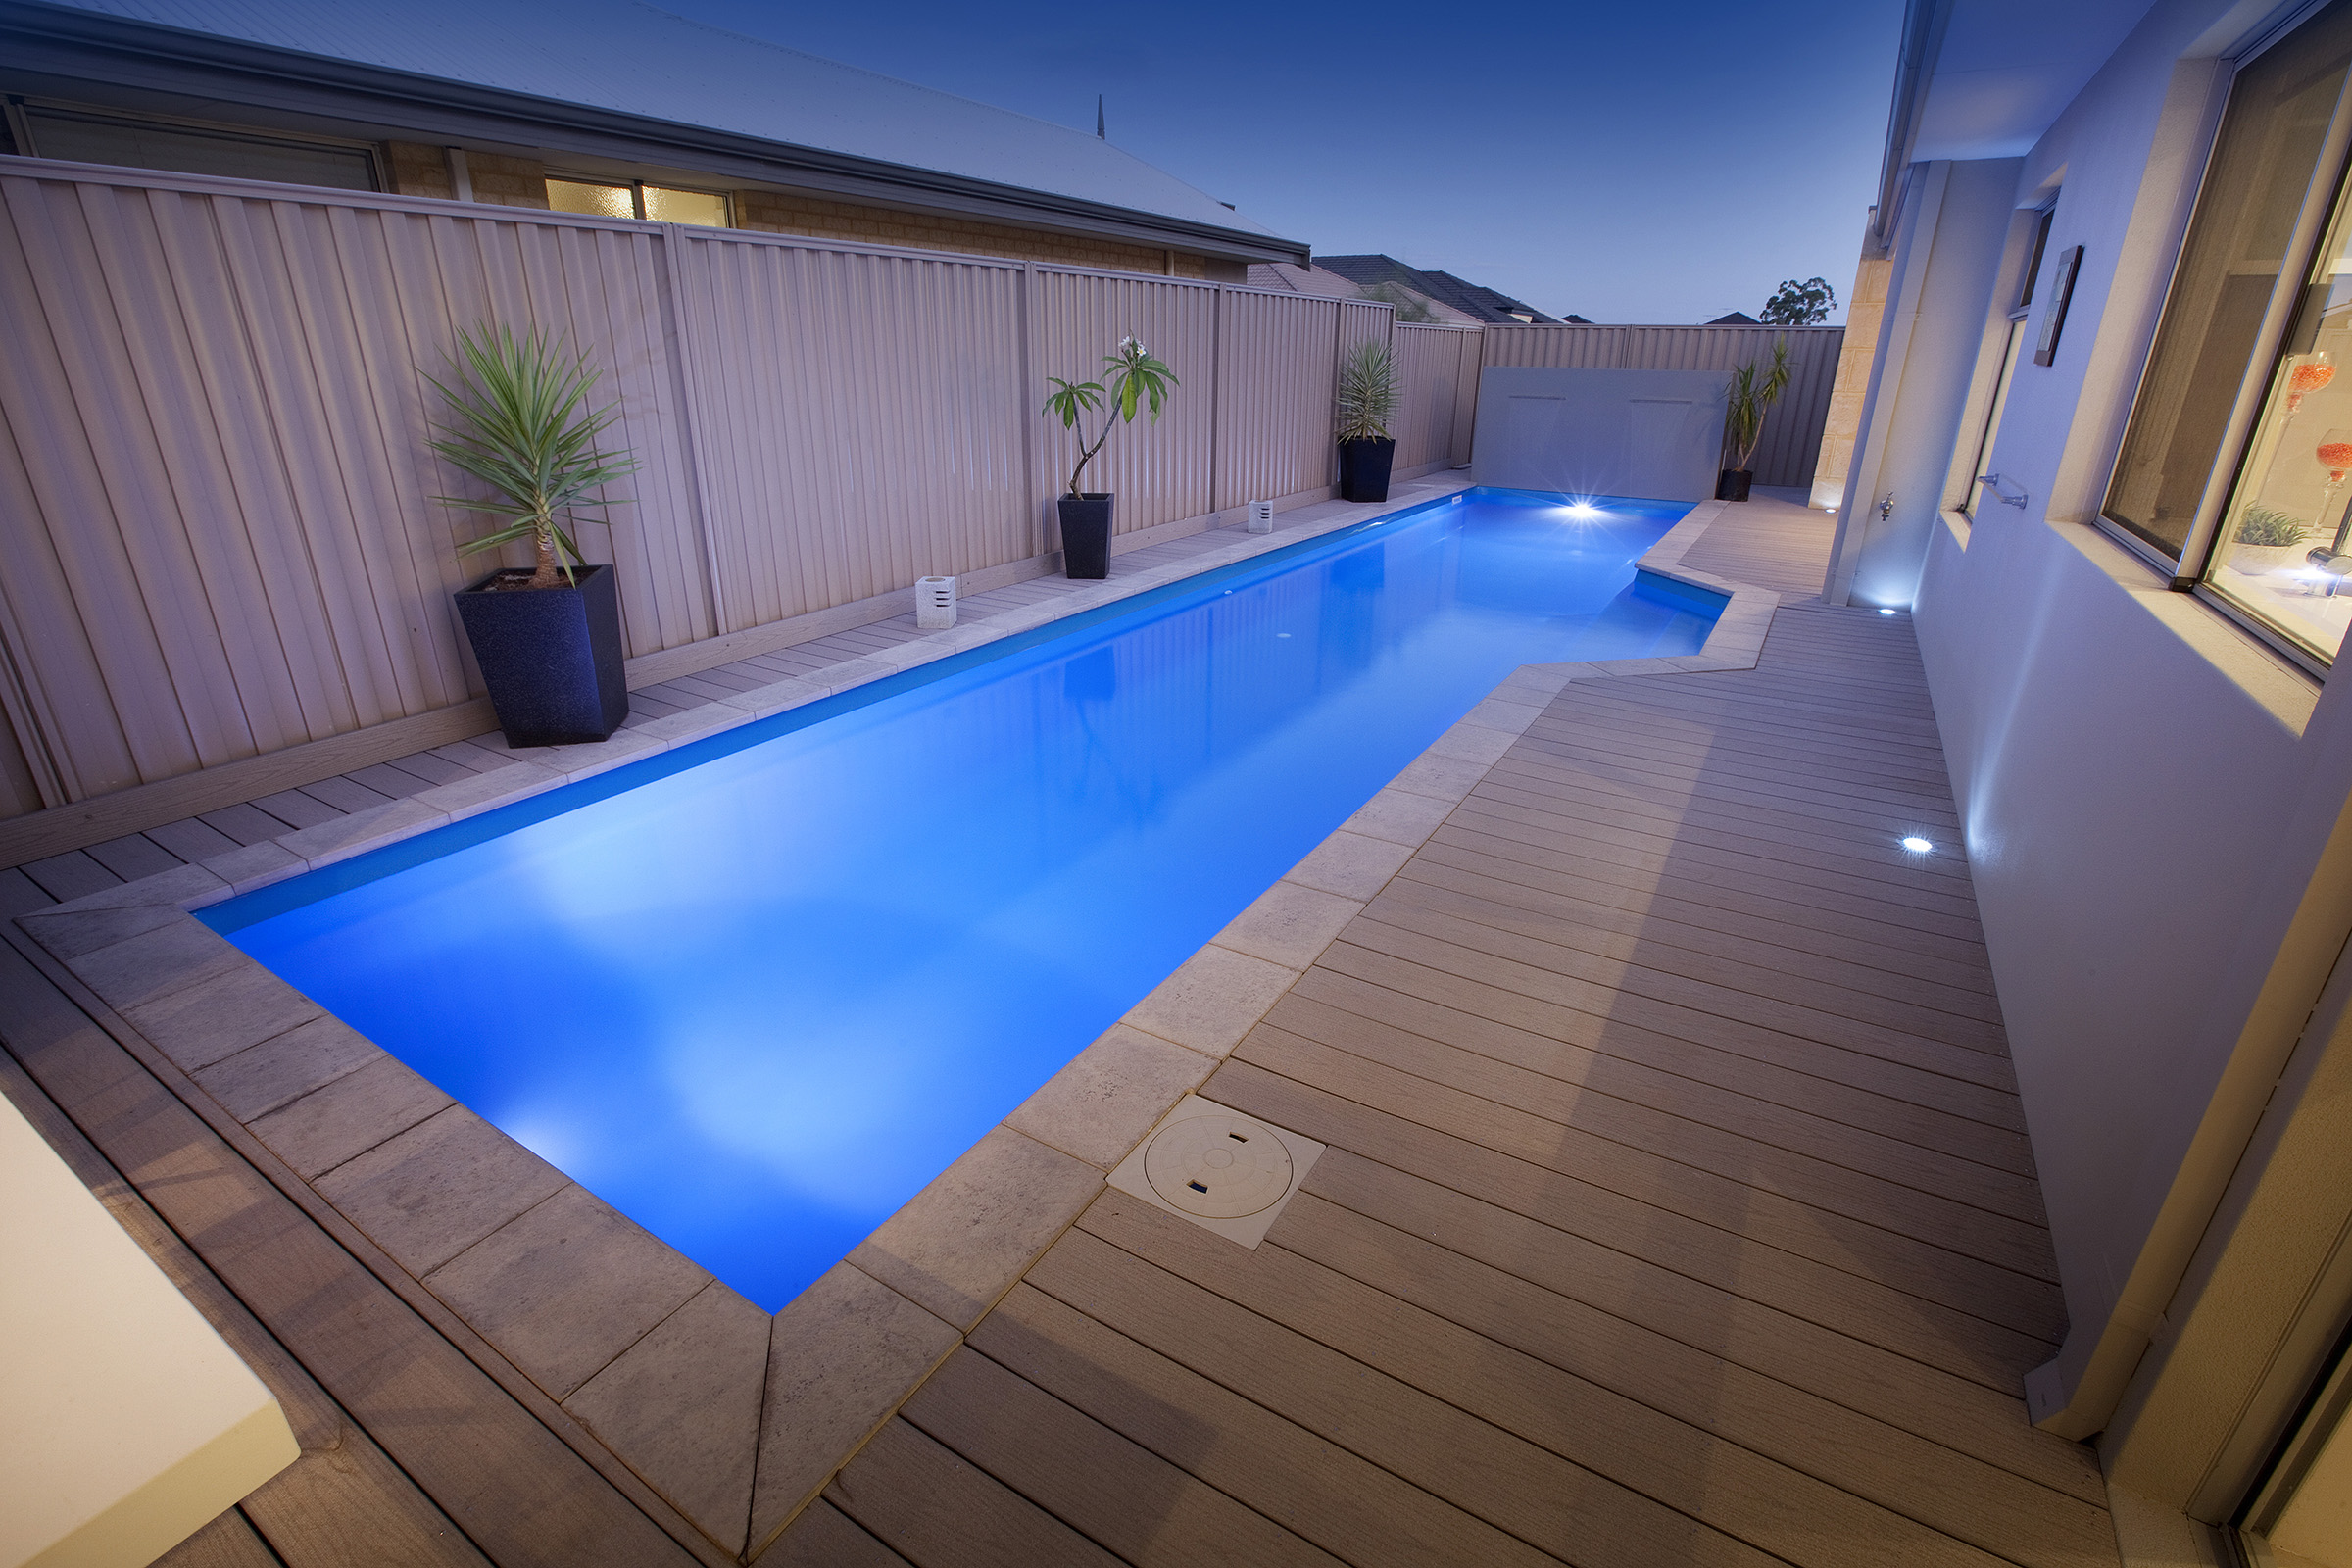 Fibreglass – Lap Pool